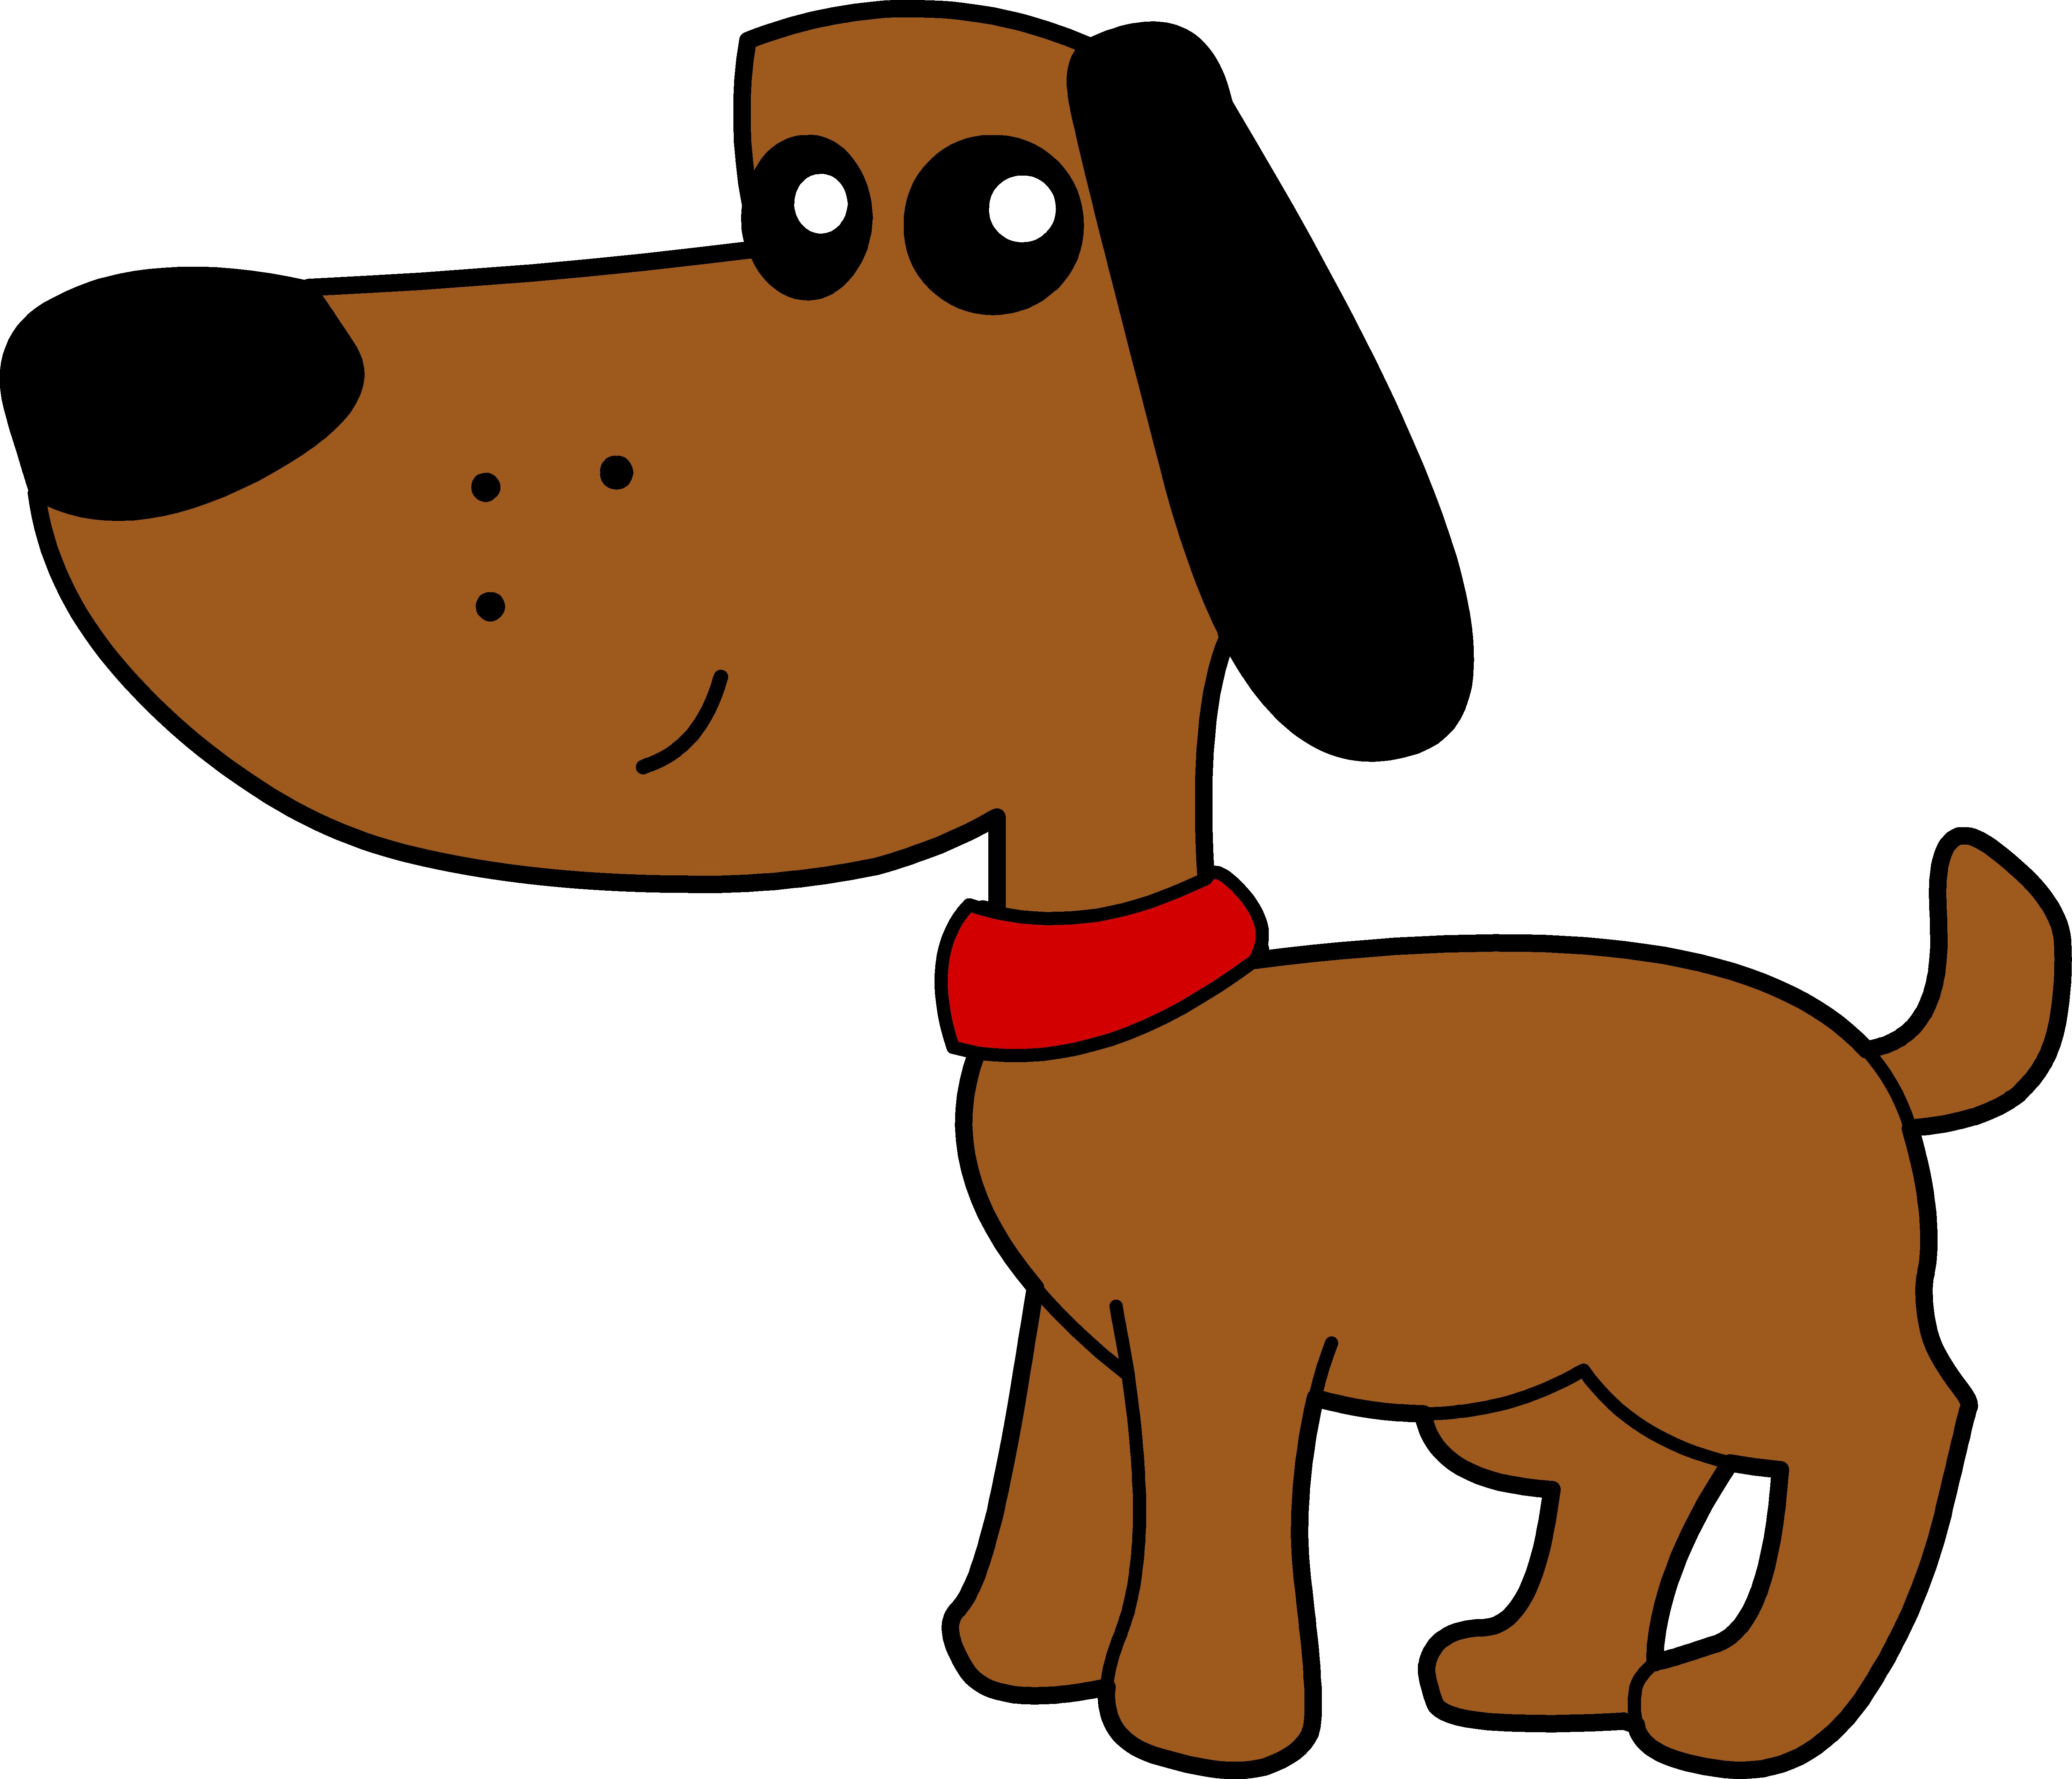 Free images of dogs. Phone clipart dog